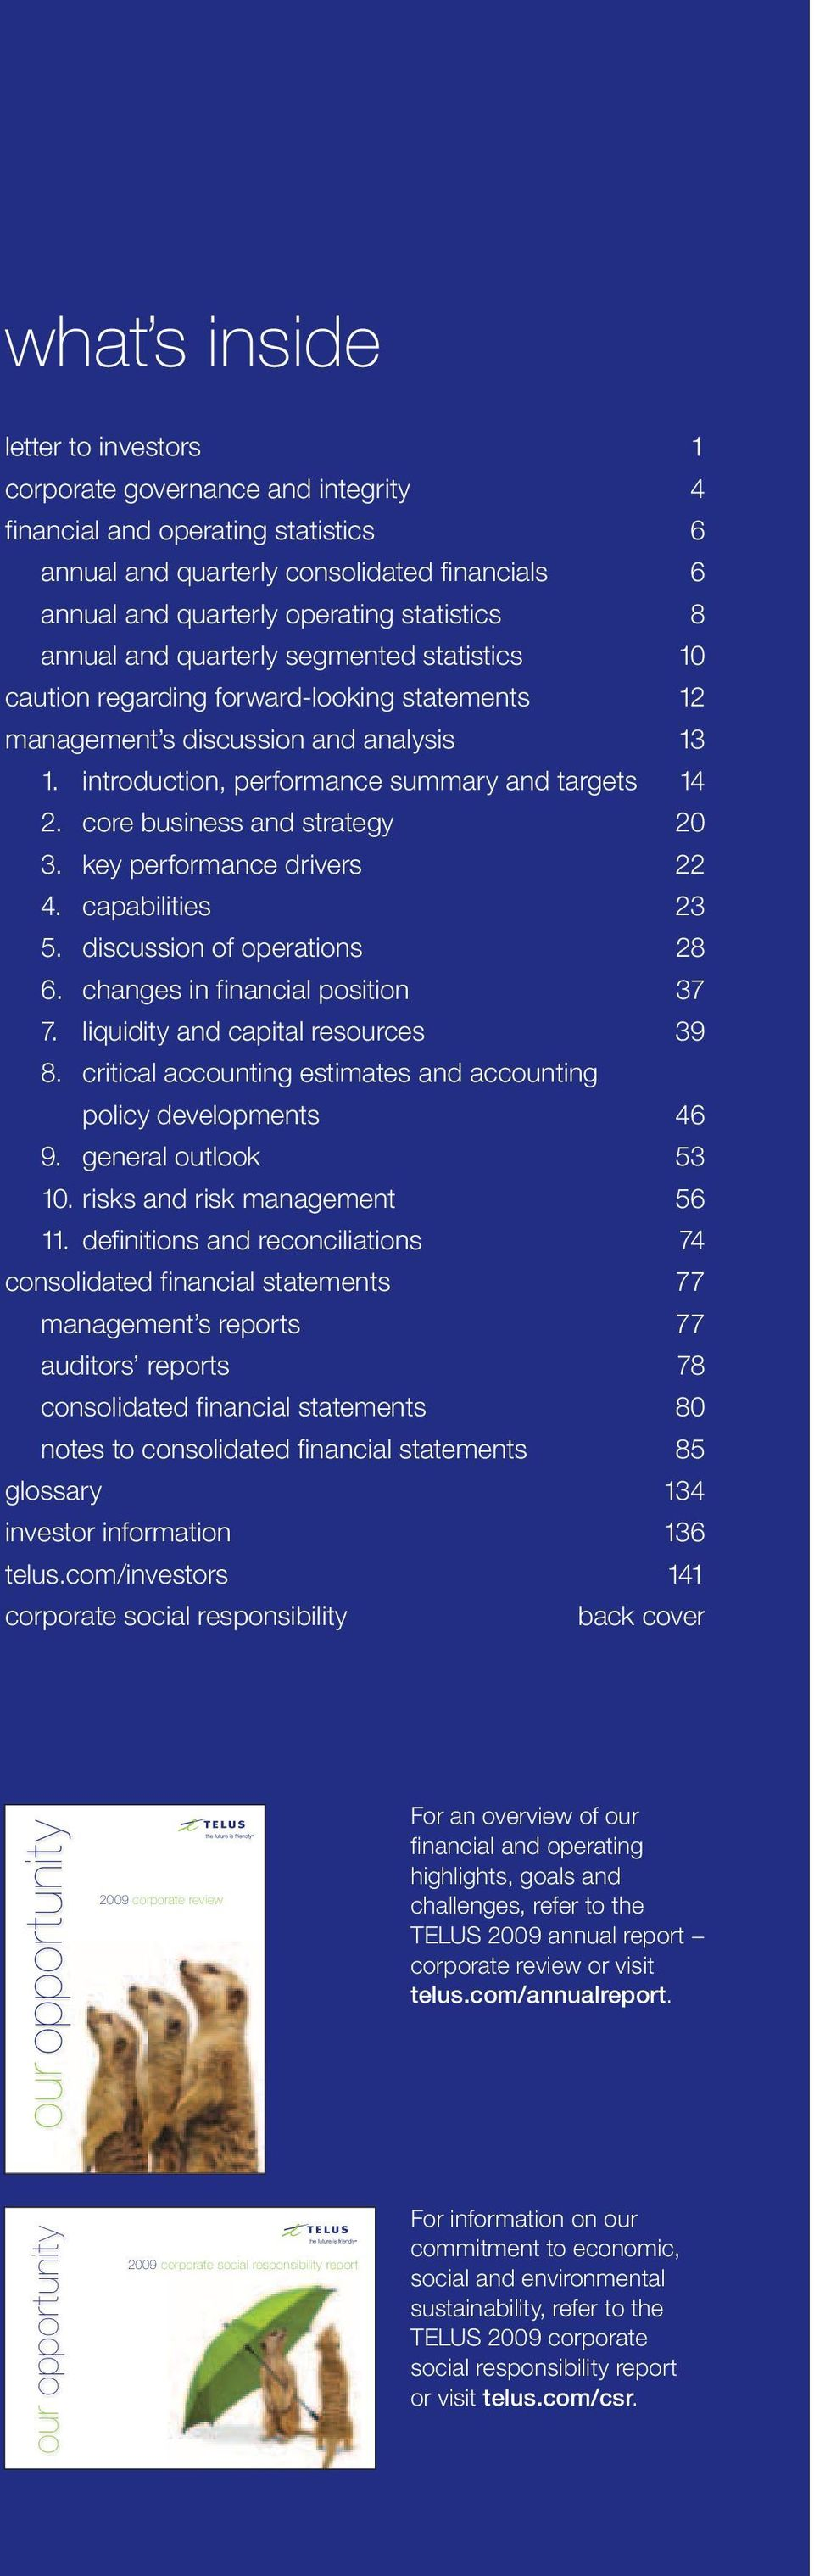 core business and strategy 20 3. key performance drivers 22 4. capabilities 23 5. discussion of operations 28 6. changes in financial position 37 7. liquidity and capital resources 39 8.